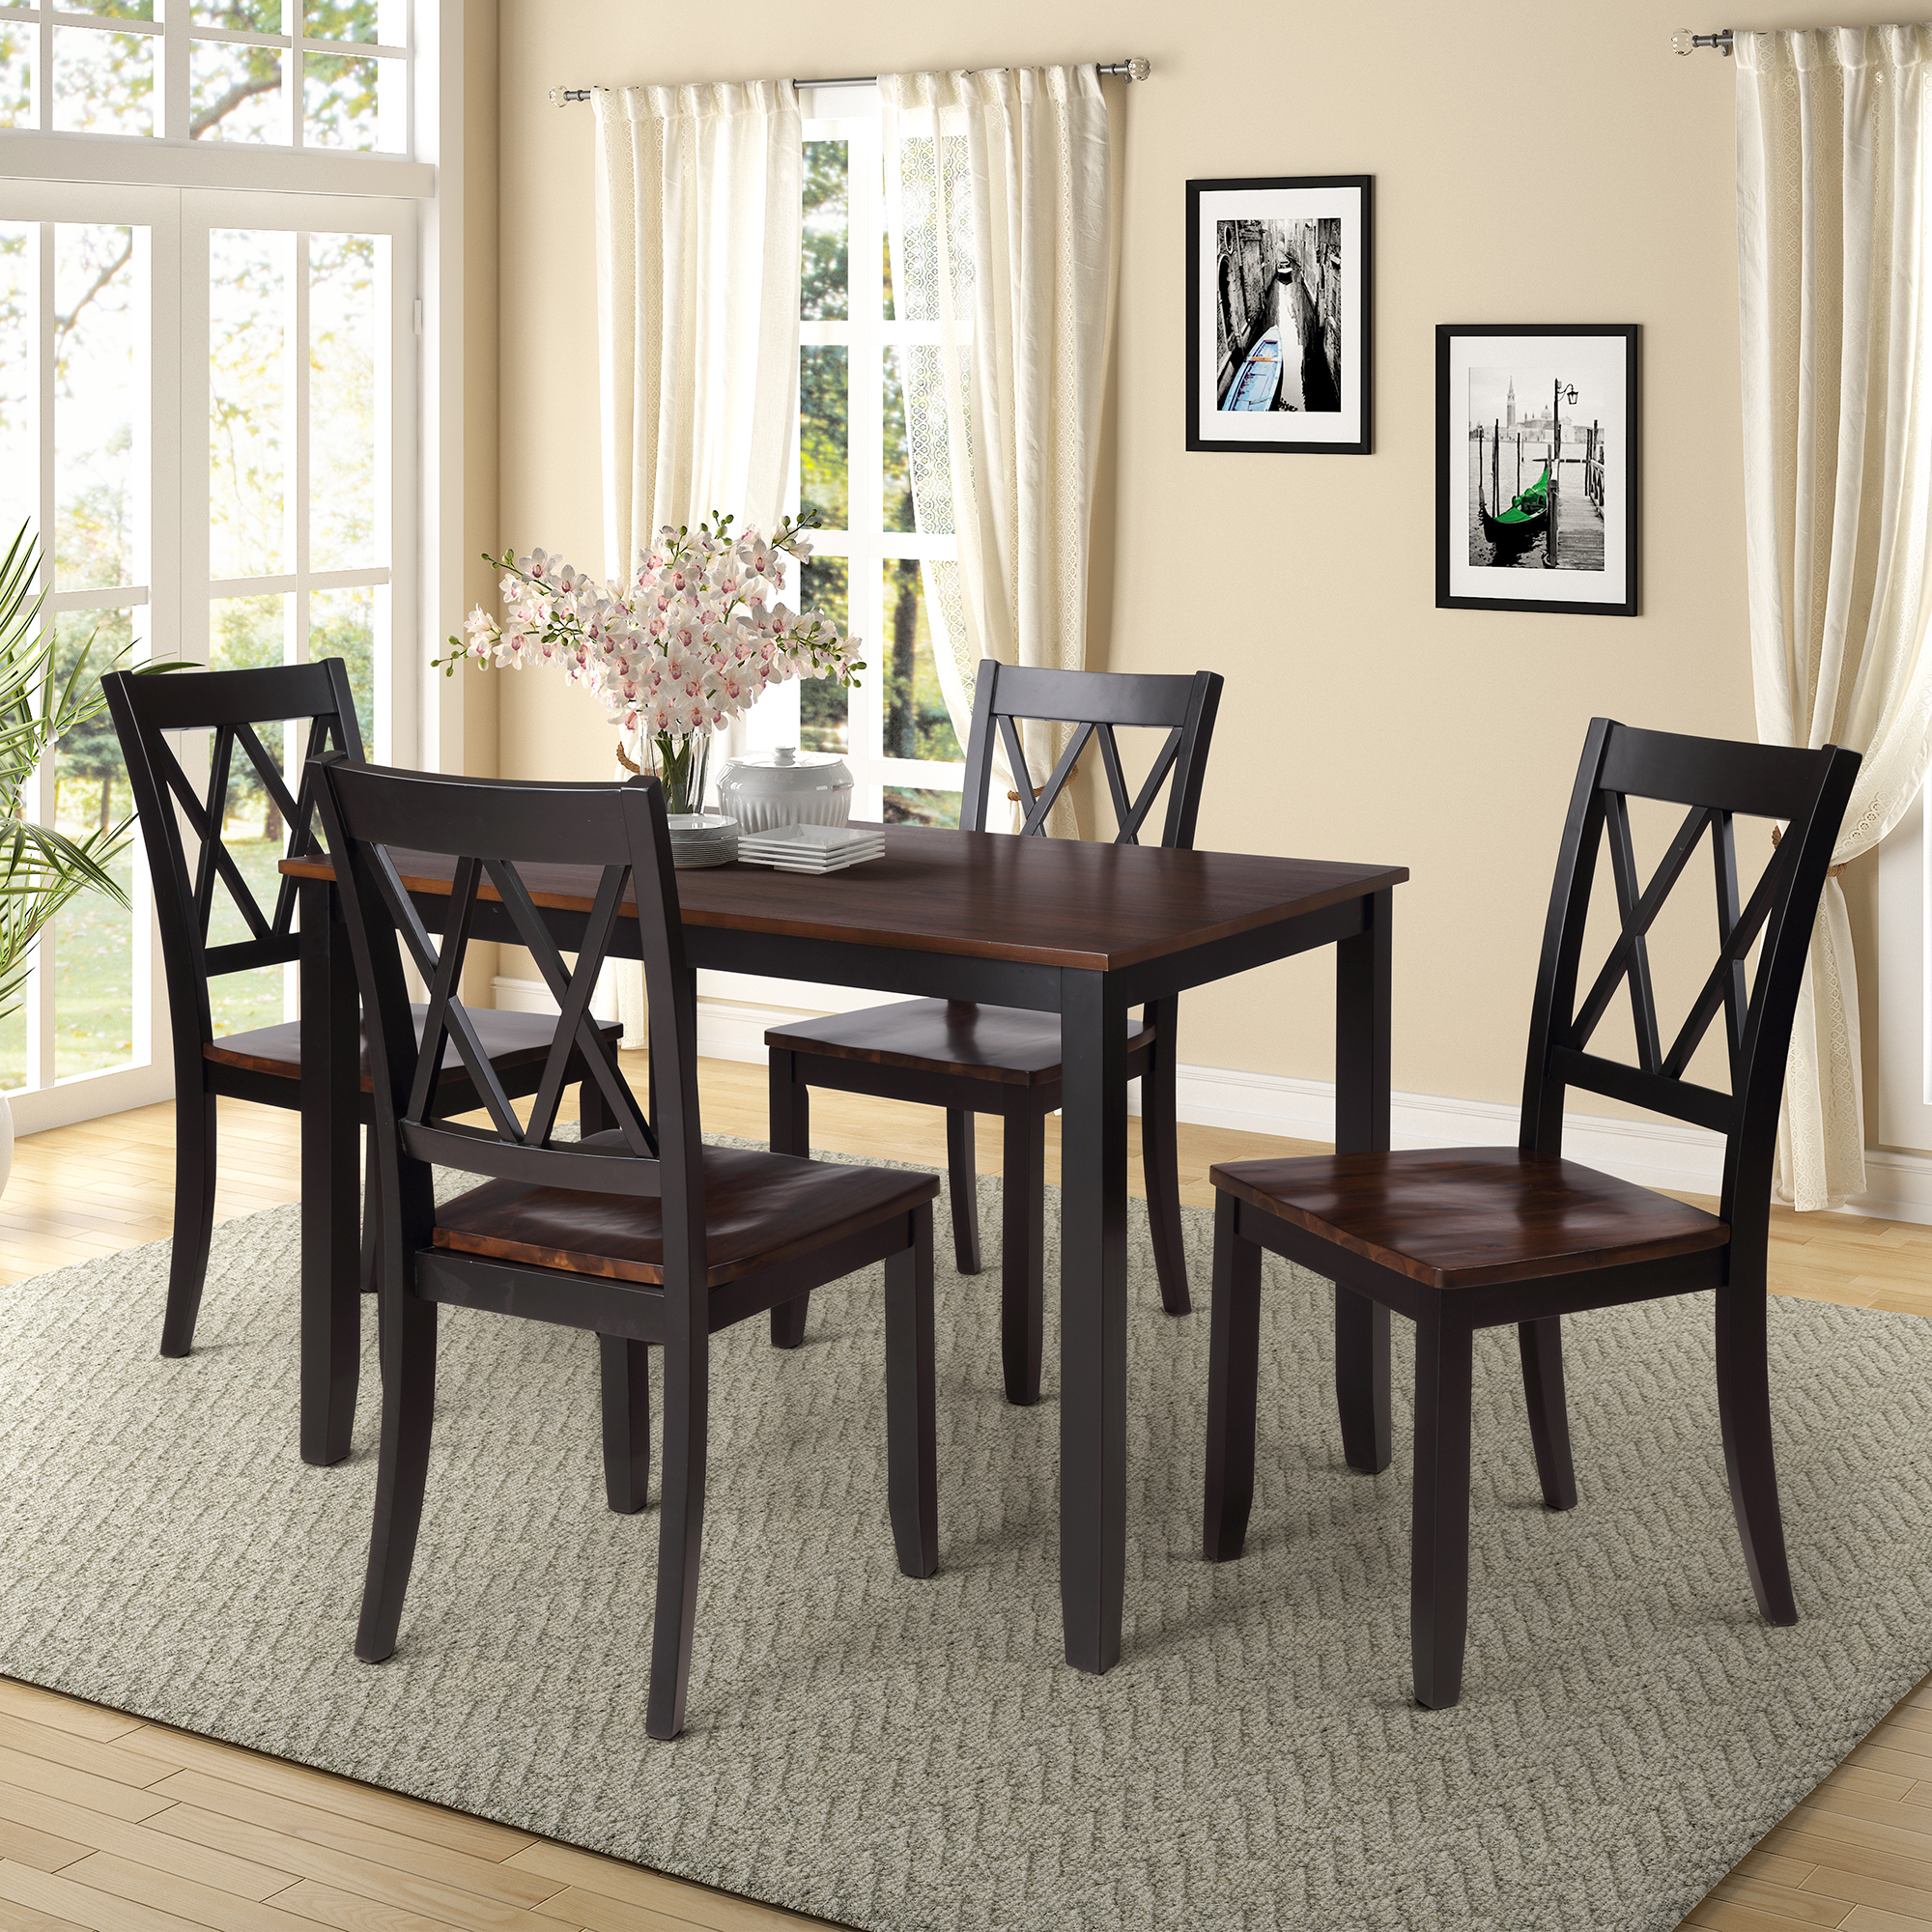 Tkoofn 5 Piece Dining Kitchen Table Dining Set Dining Room Table Set Table And Chair Walmart Com Walmart Com